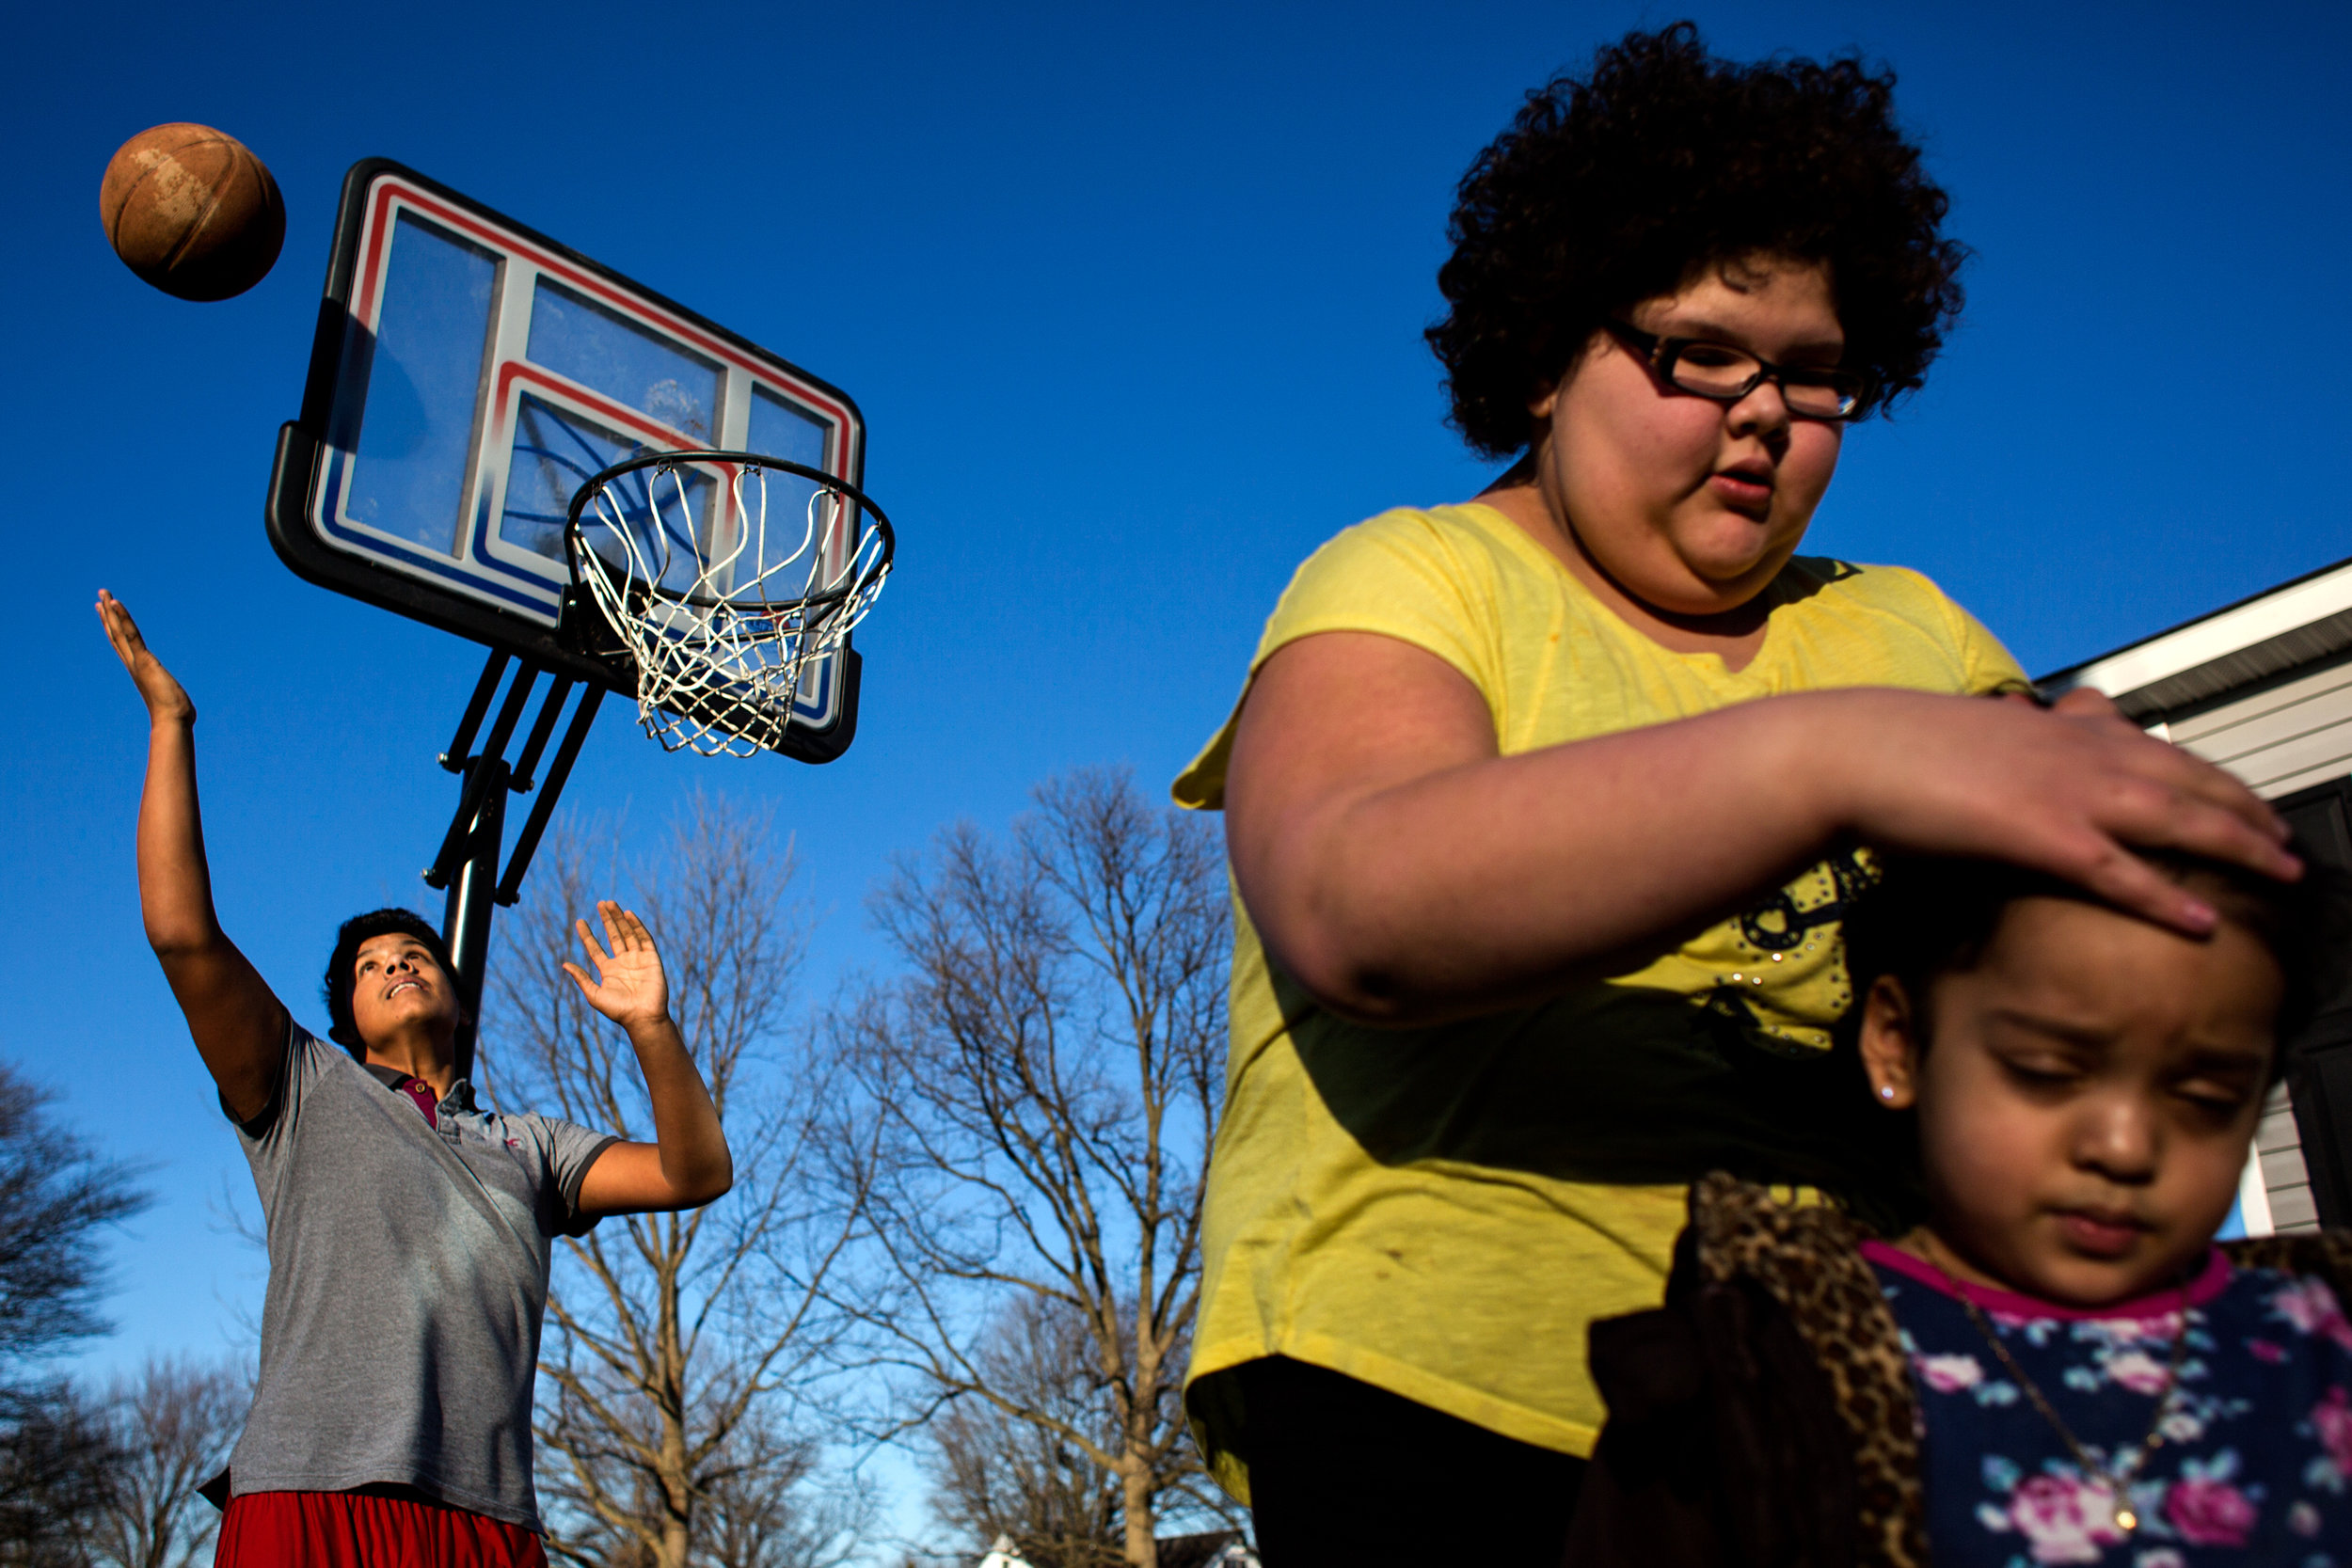 Melvin Orellana, 15, left, caught a rebound while his sister Margery Villalta, 11, tied up the hair of their cousin Cinita Lopez, 3, all of Huntingburg, on Wednesday afternoon outside their home in Huntingburg. The cousins took advantage of this week's unseasonably warm weather — Wednesday's highs reached into the 60s — and played outside.